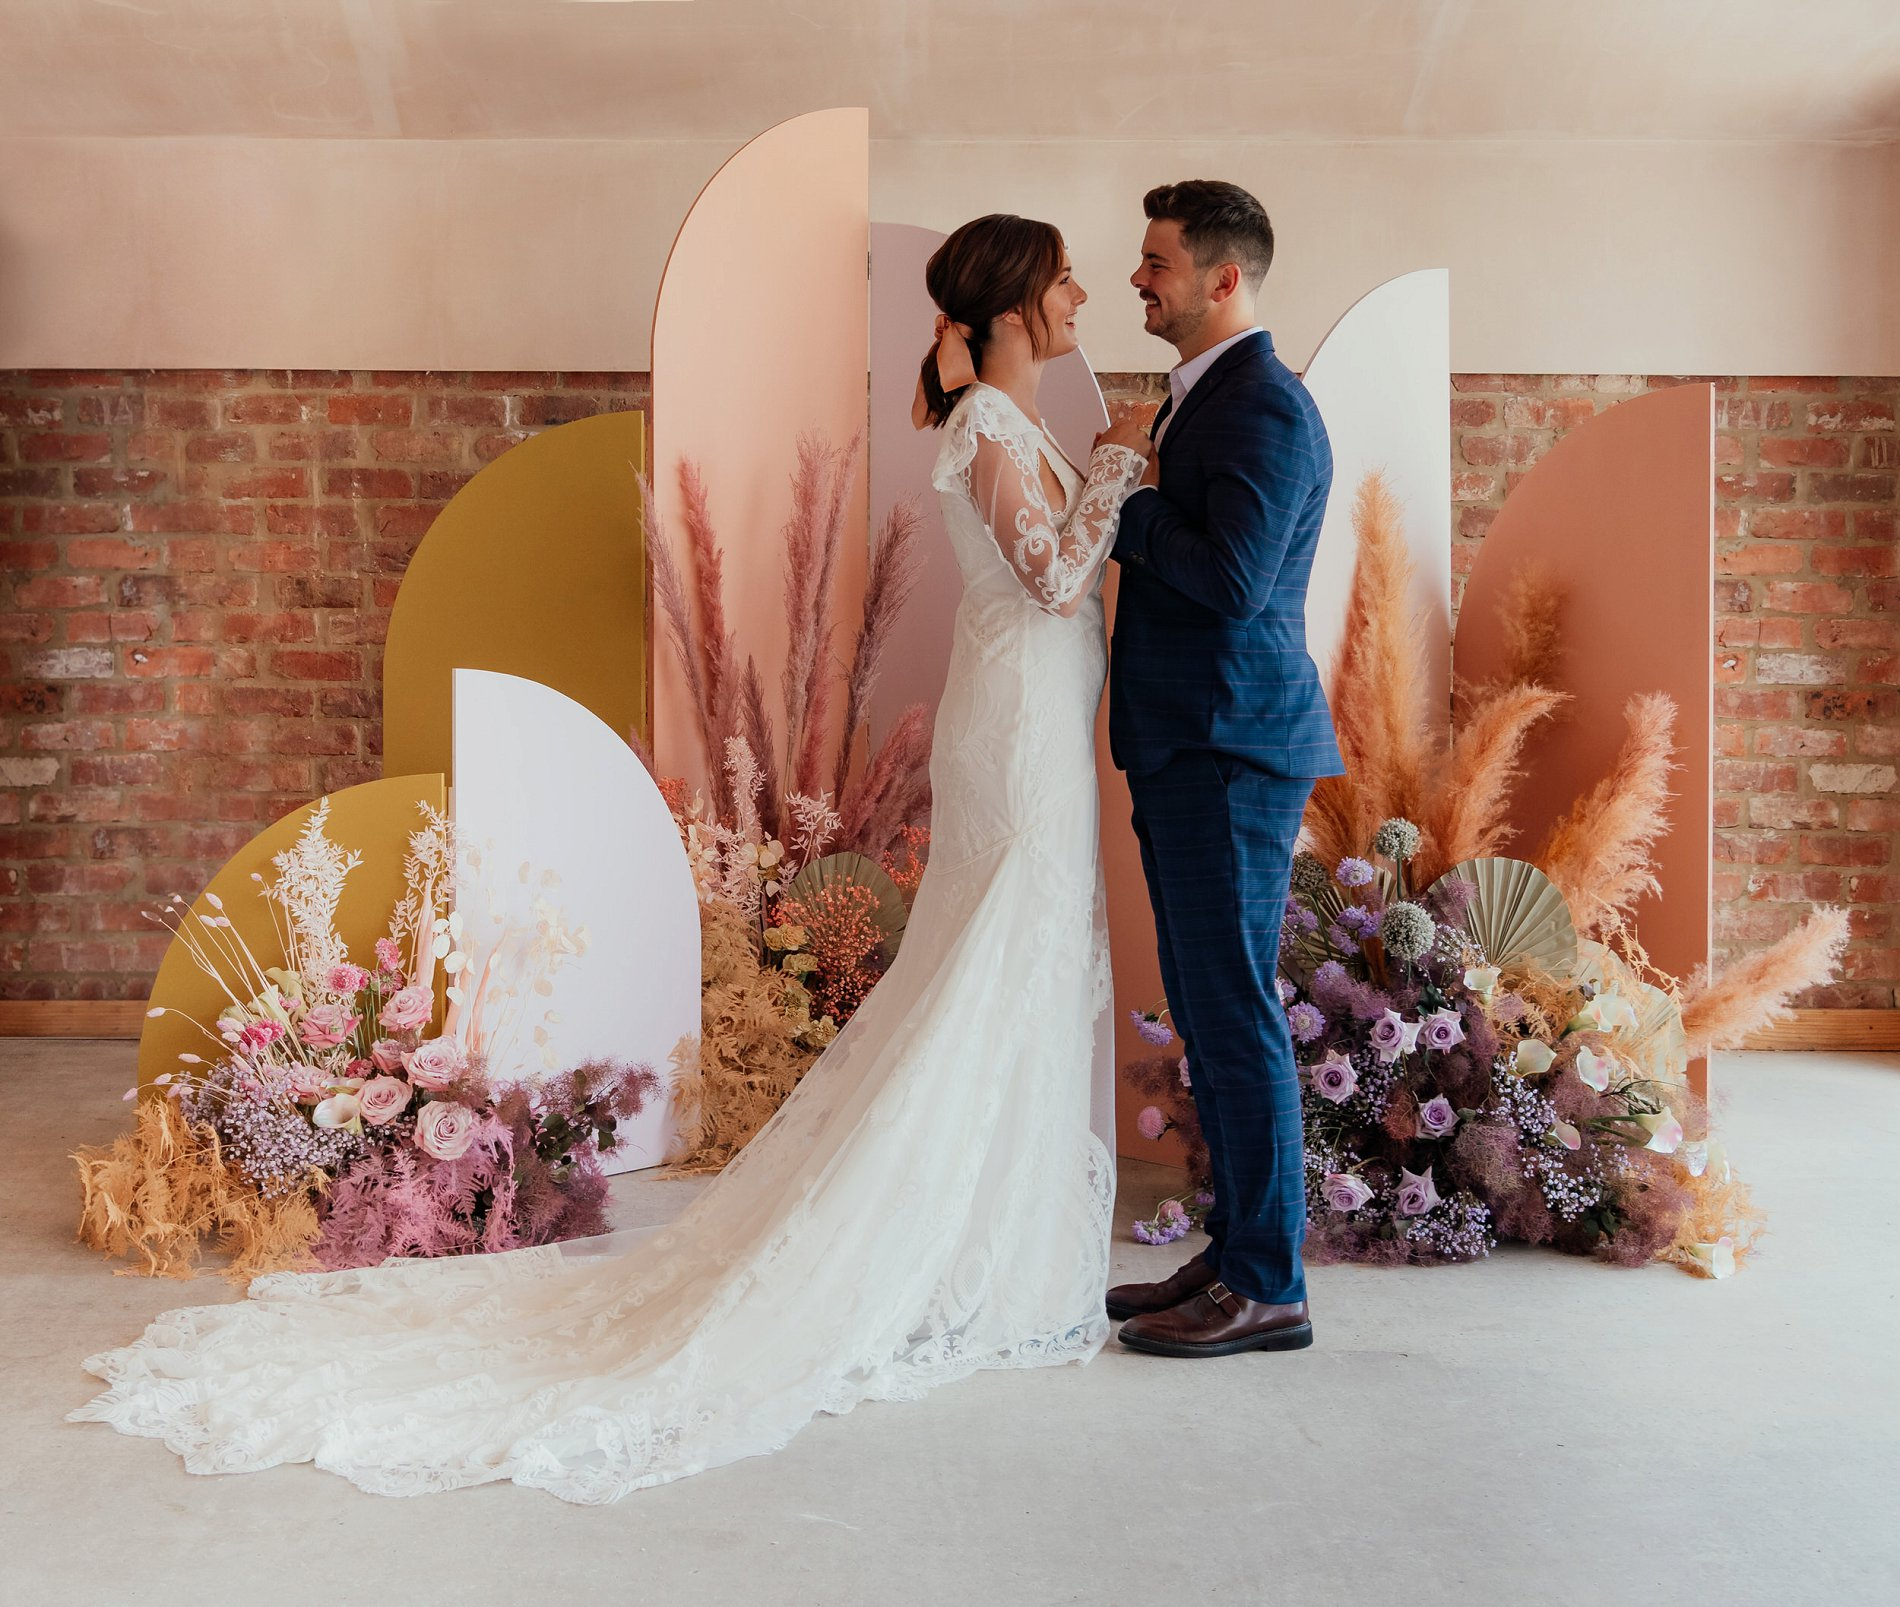 Romantic Boho Wedding Shoot at The Barn In Willerby Hill (c) Rosanna Lilly Photography (18)